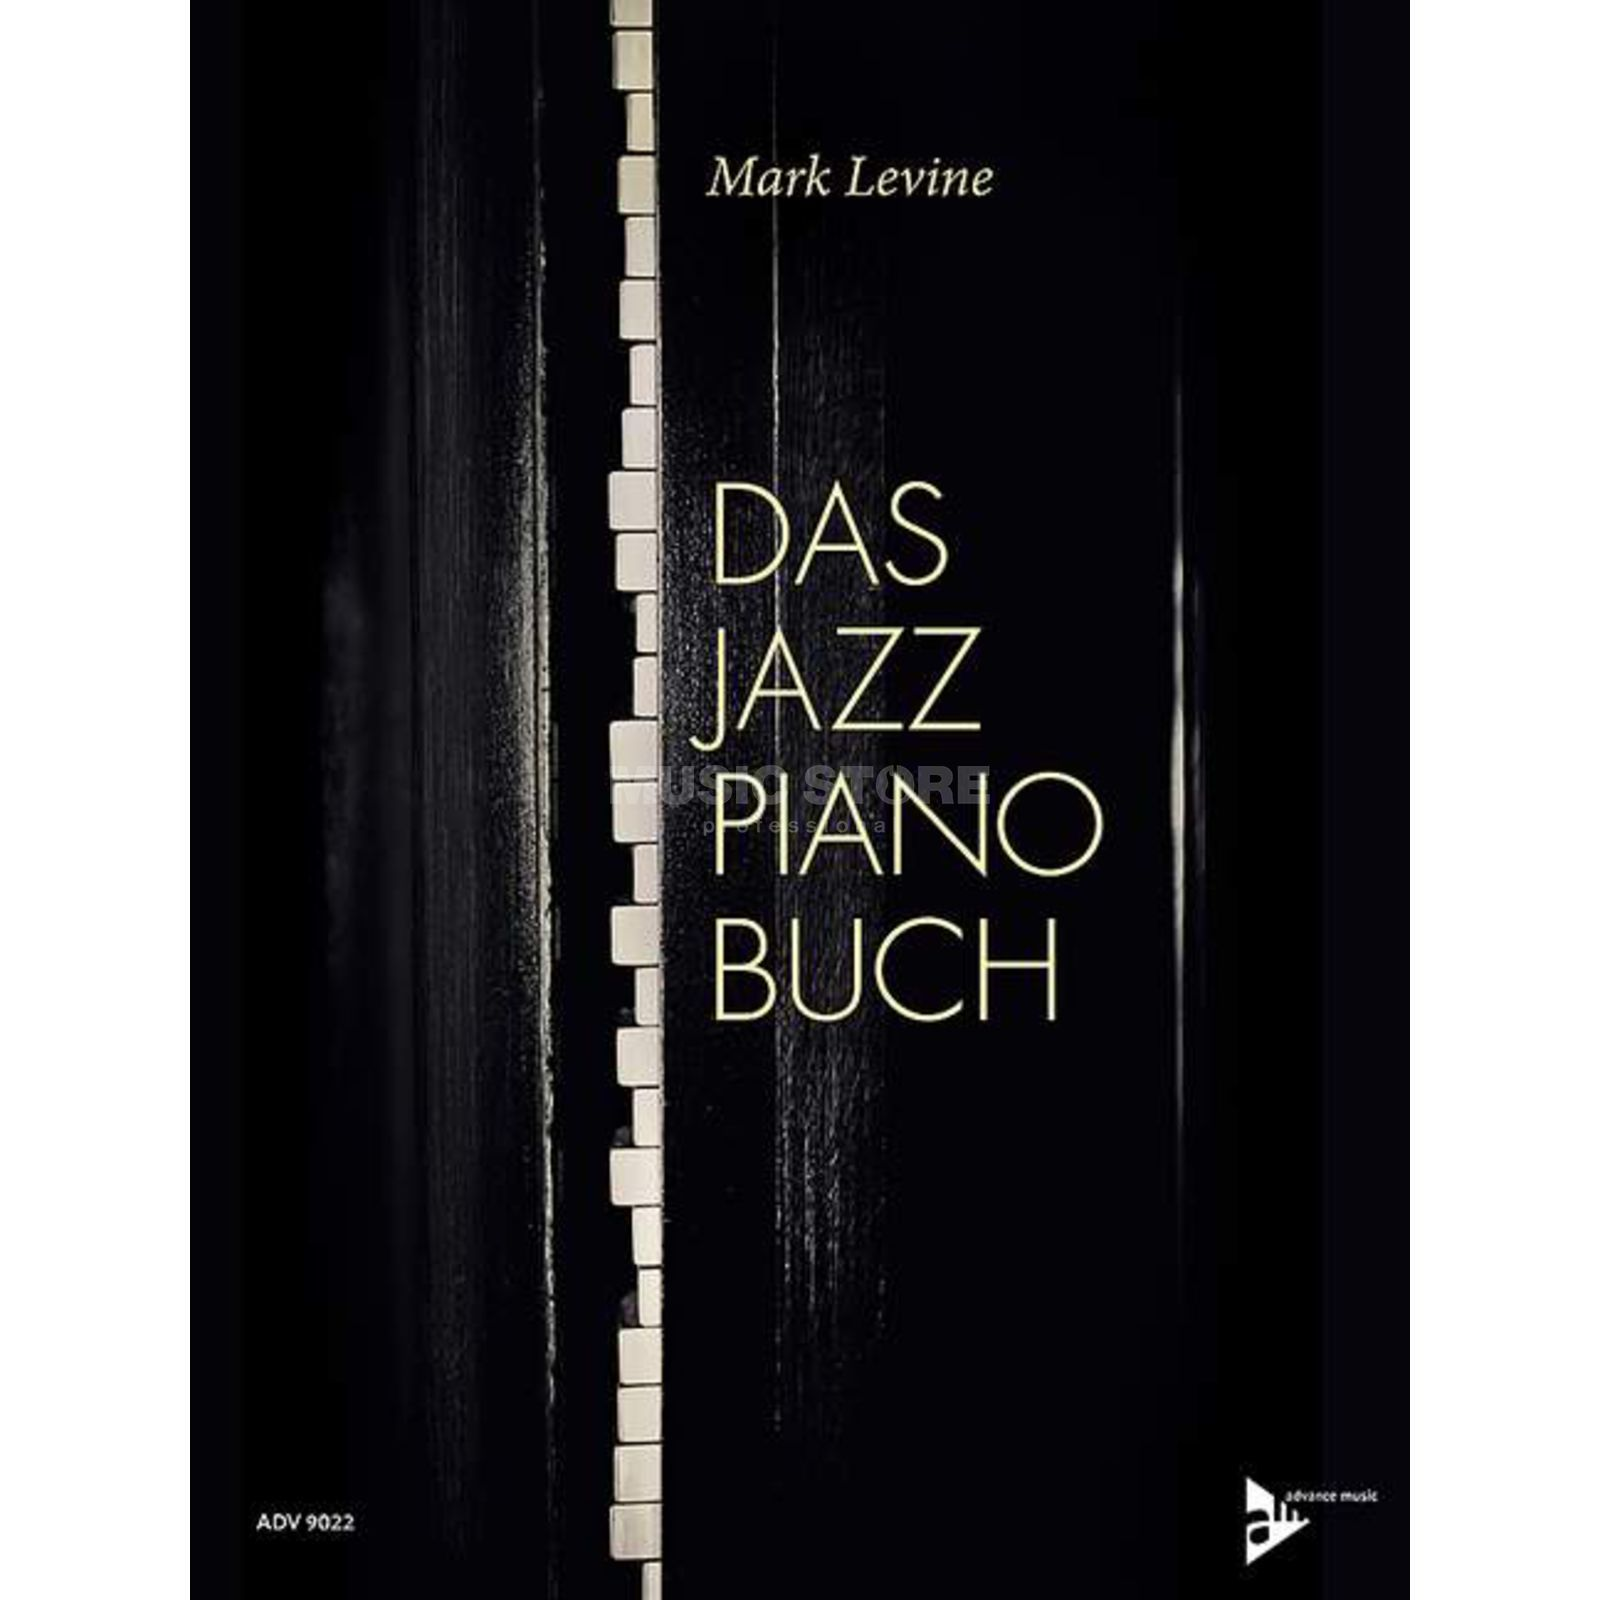 Advance Music Levine: Das Jazz Piano Buch Mark Levine, Buch Produktbillede